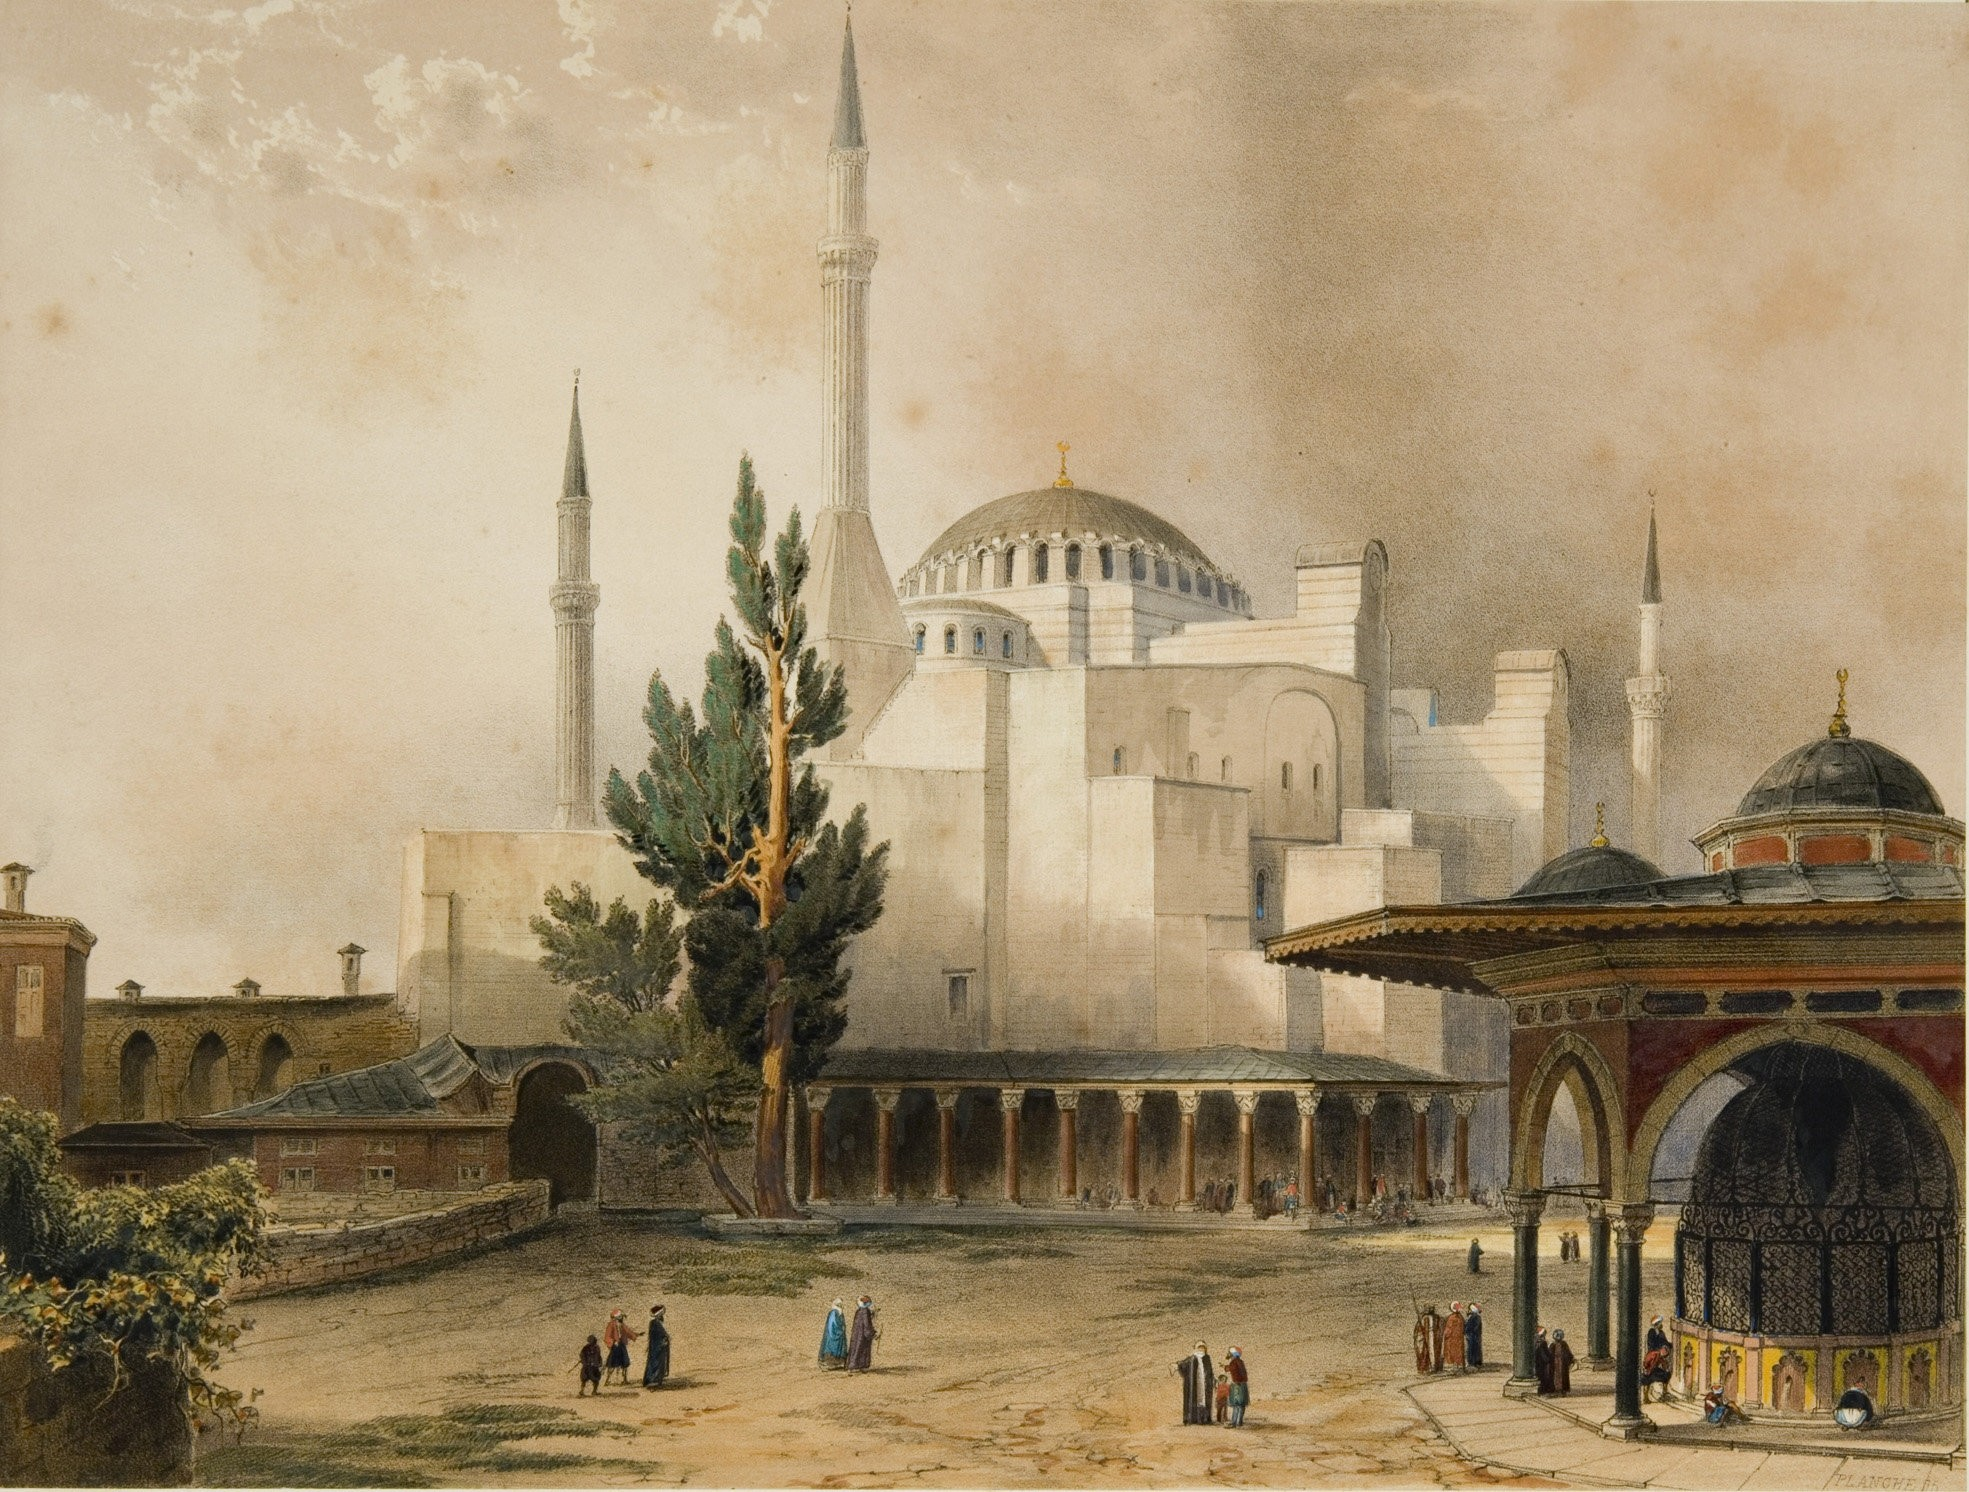 A painting by an unknown artist depicting Hagia Sophia in the 19th century.